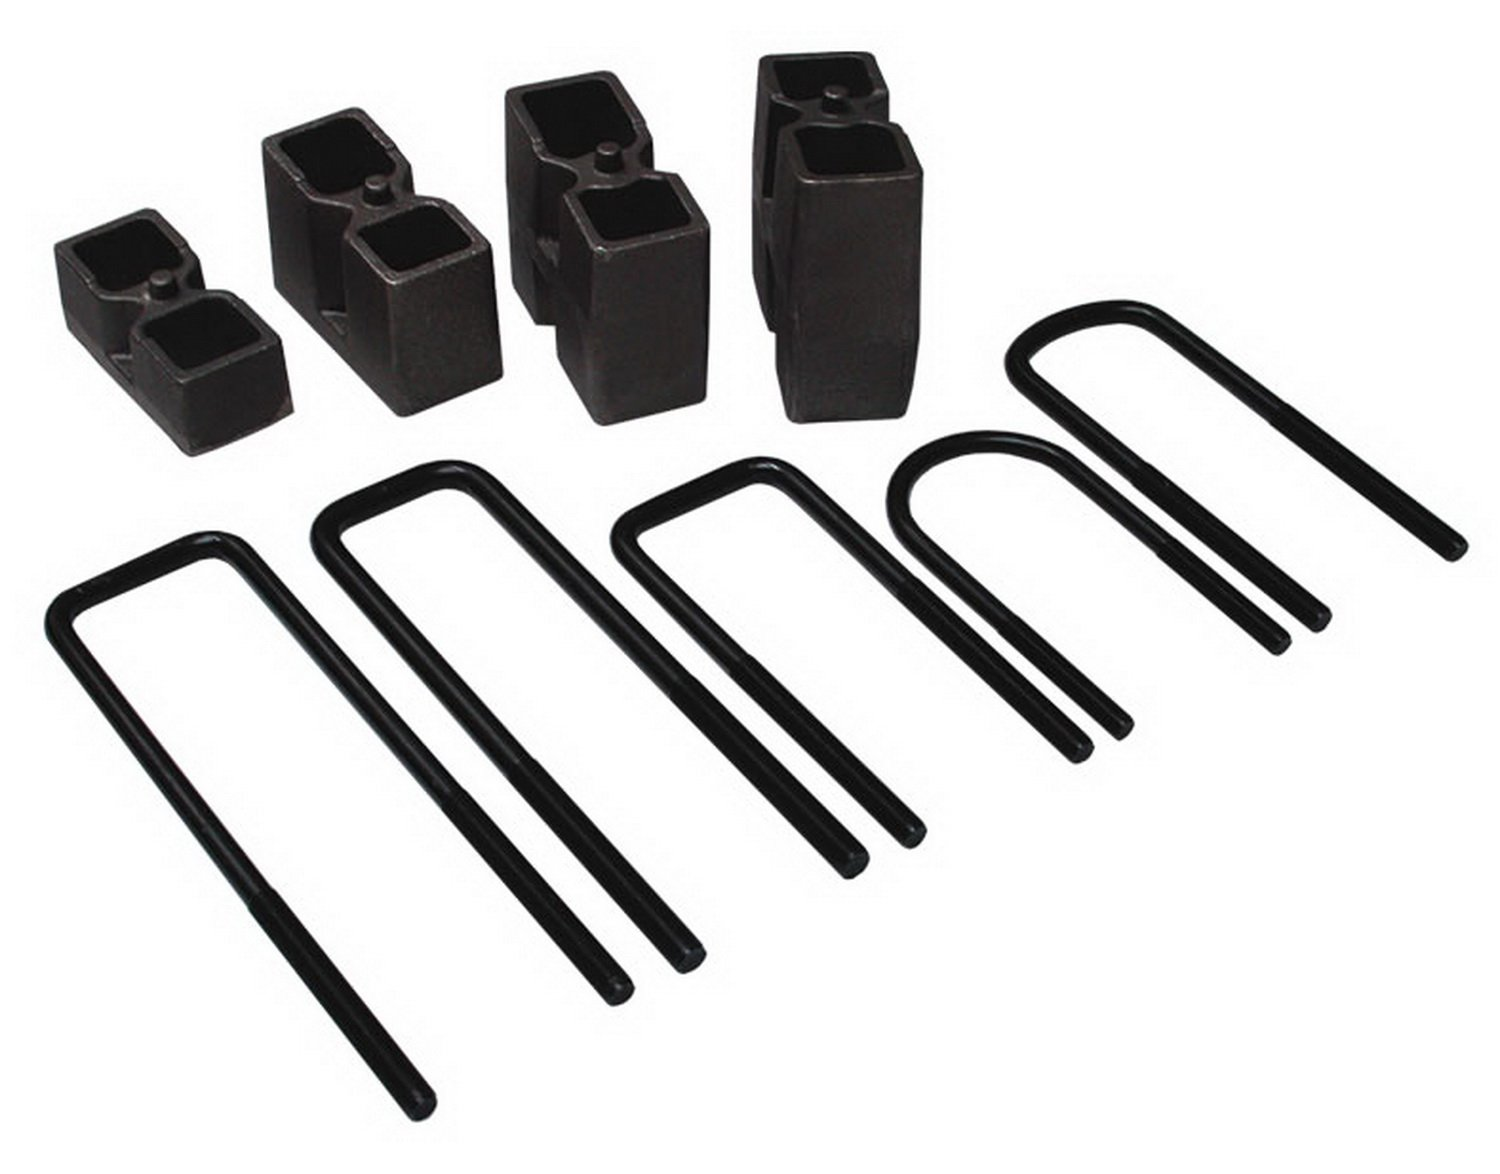 Skyjacker BUK3591 - Skyjacker Blocks & U-Bolt Kits